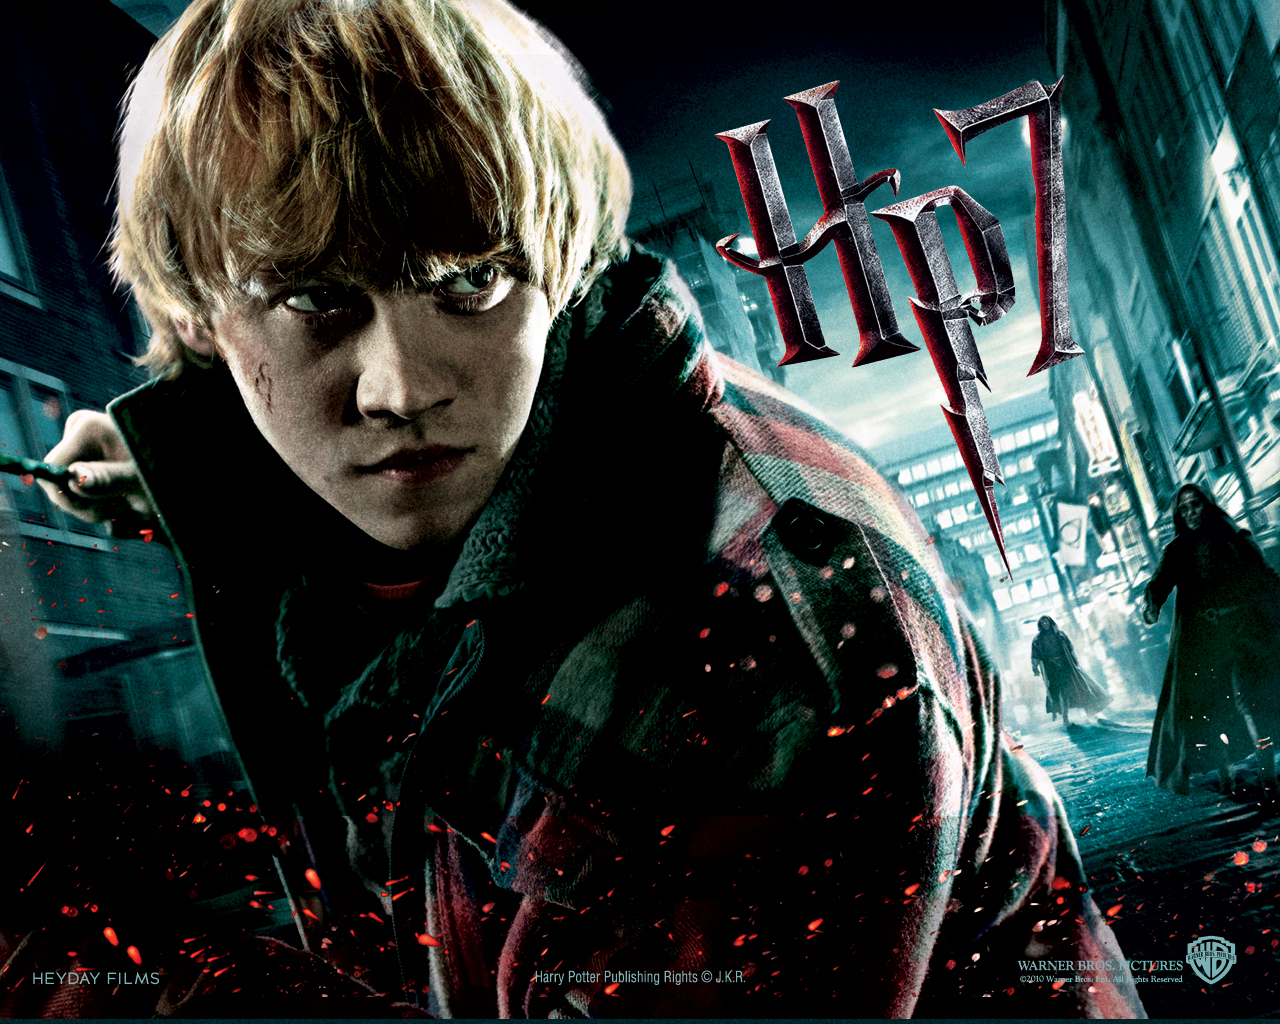 Rony Harry Potter And The Deathly Hallows Harry Potter Wallpaper